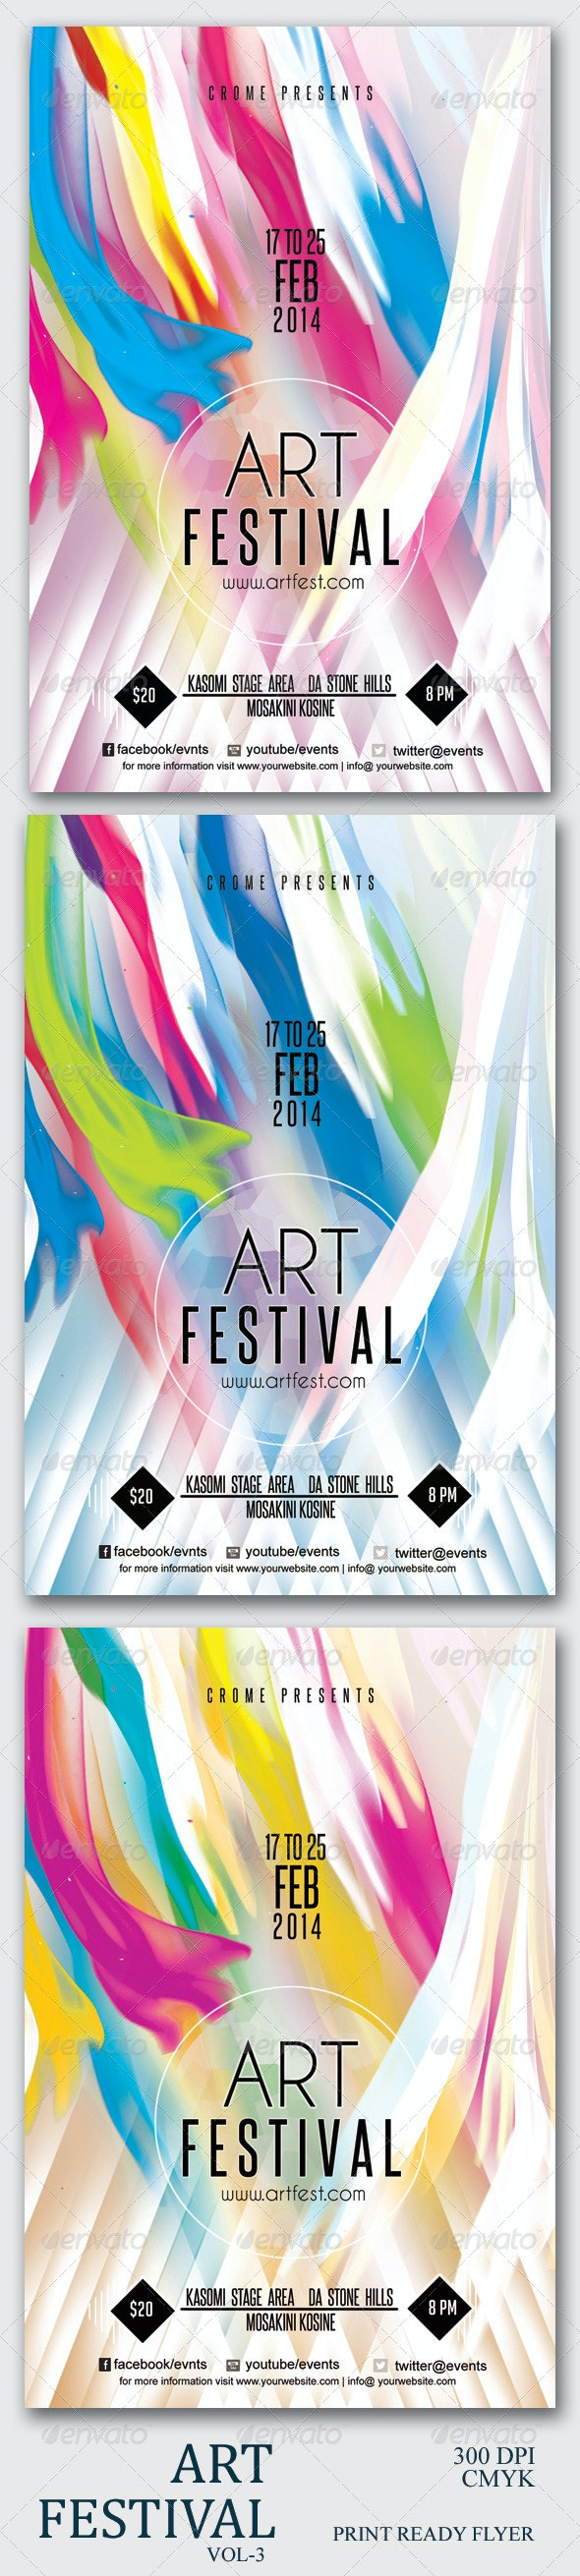 Art Festival Flyer 3 - Clubs & Parties Events